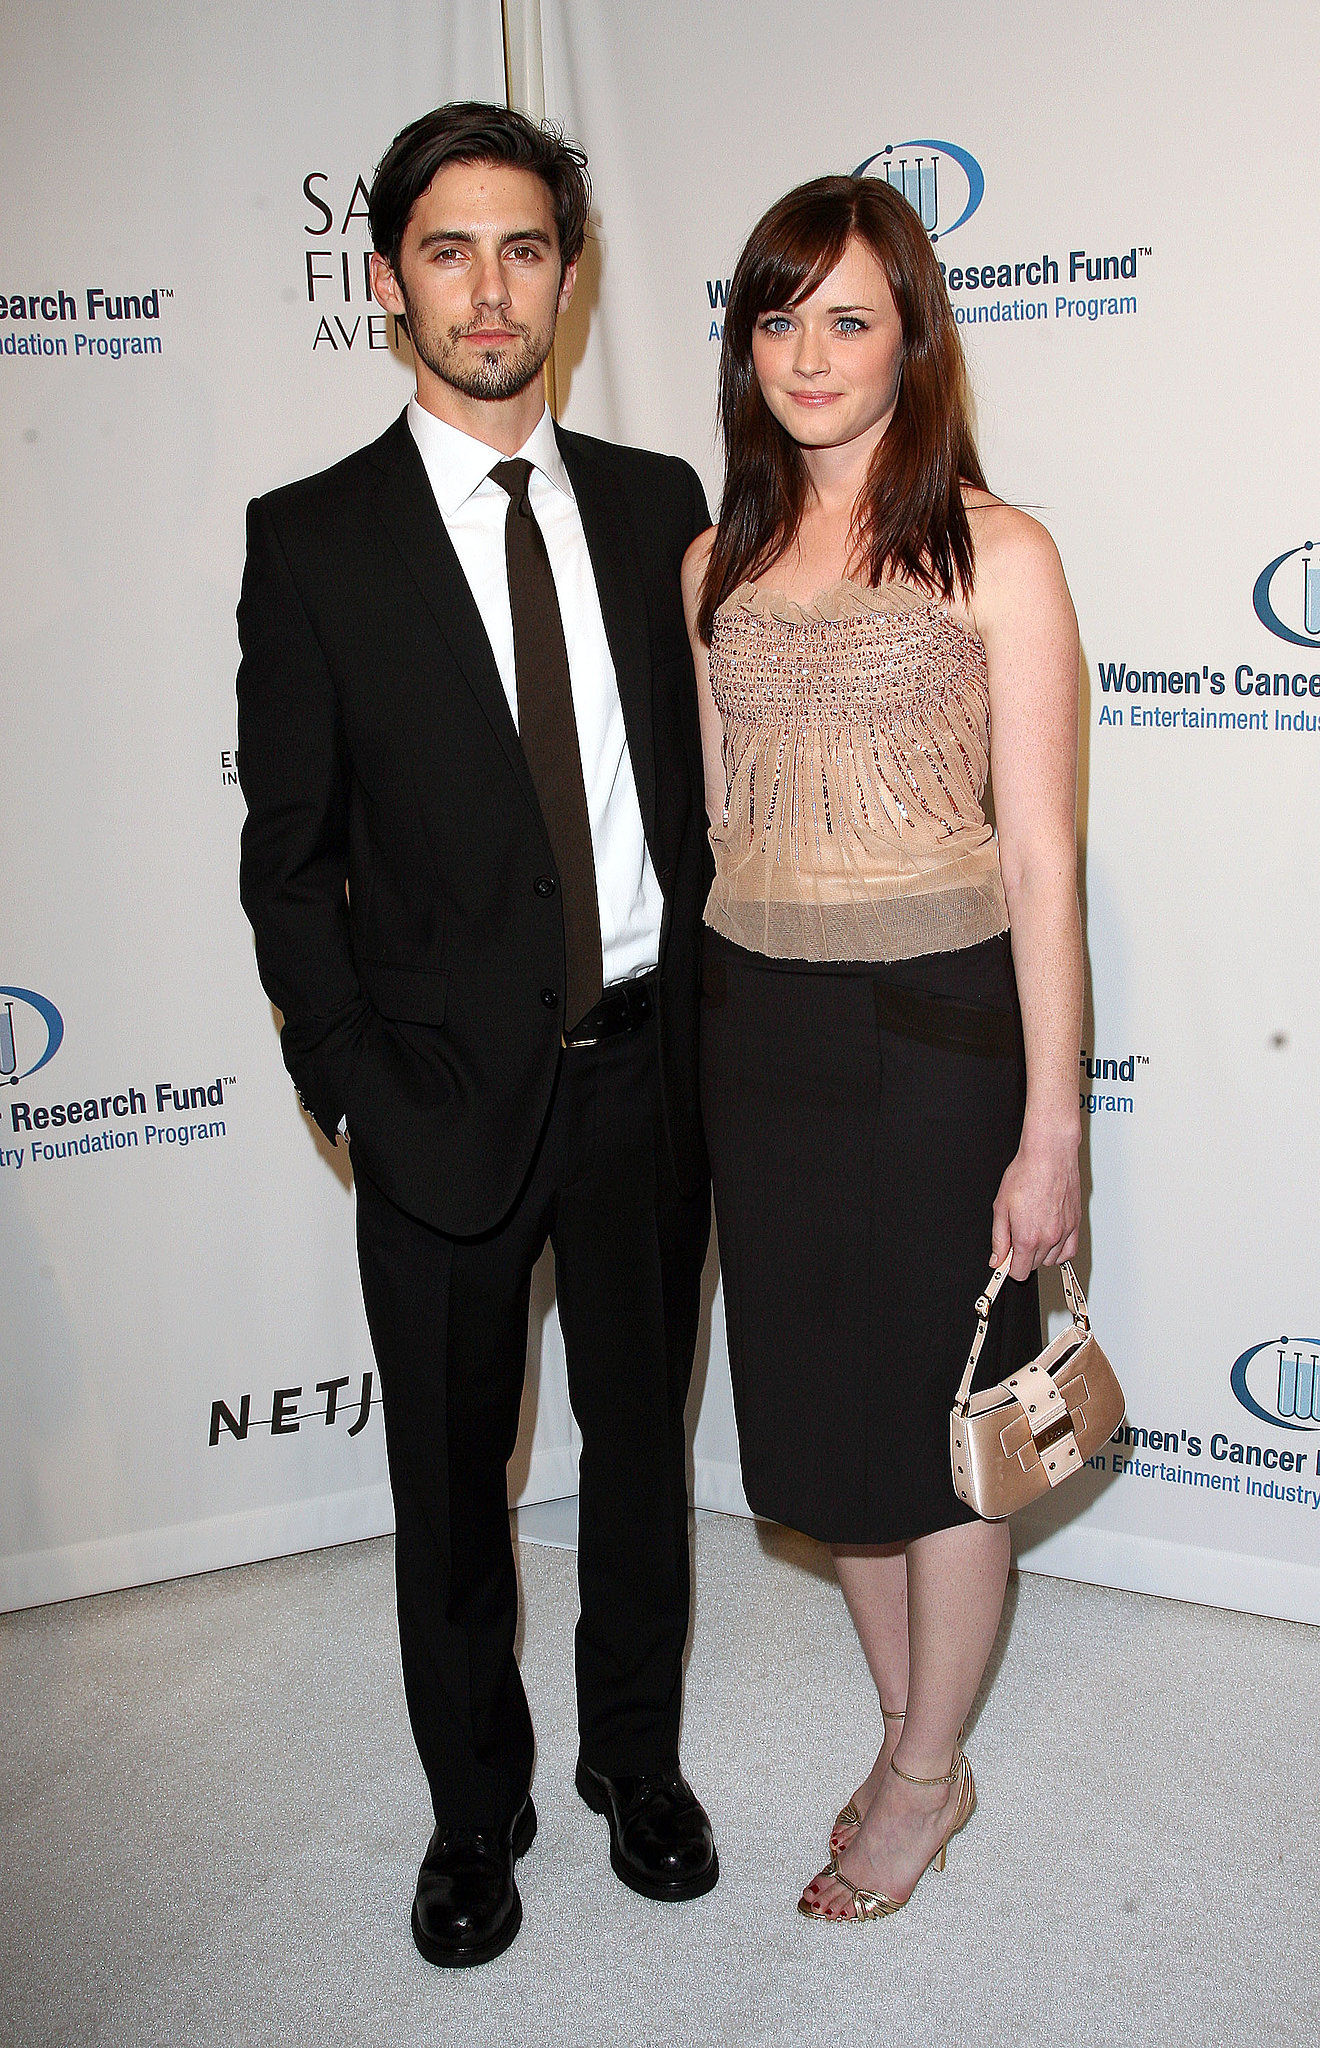 Milo Ventimiglia couple